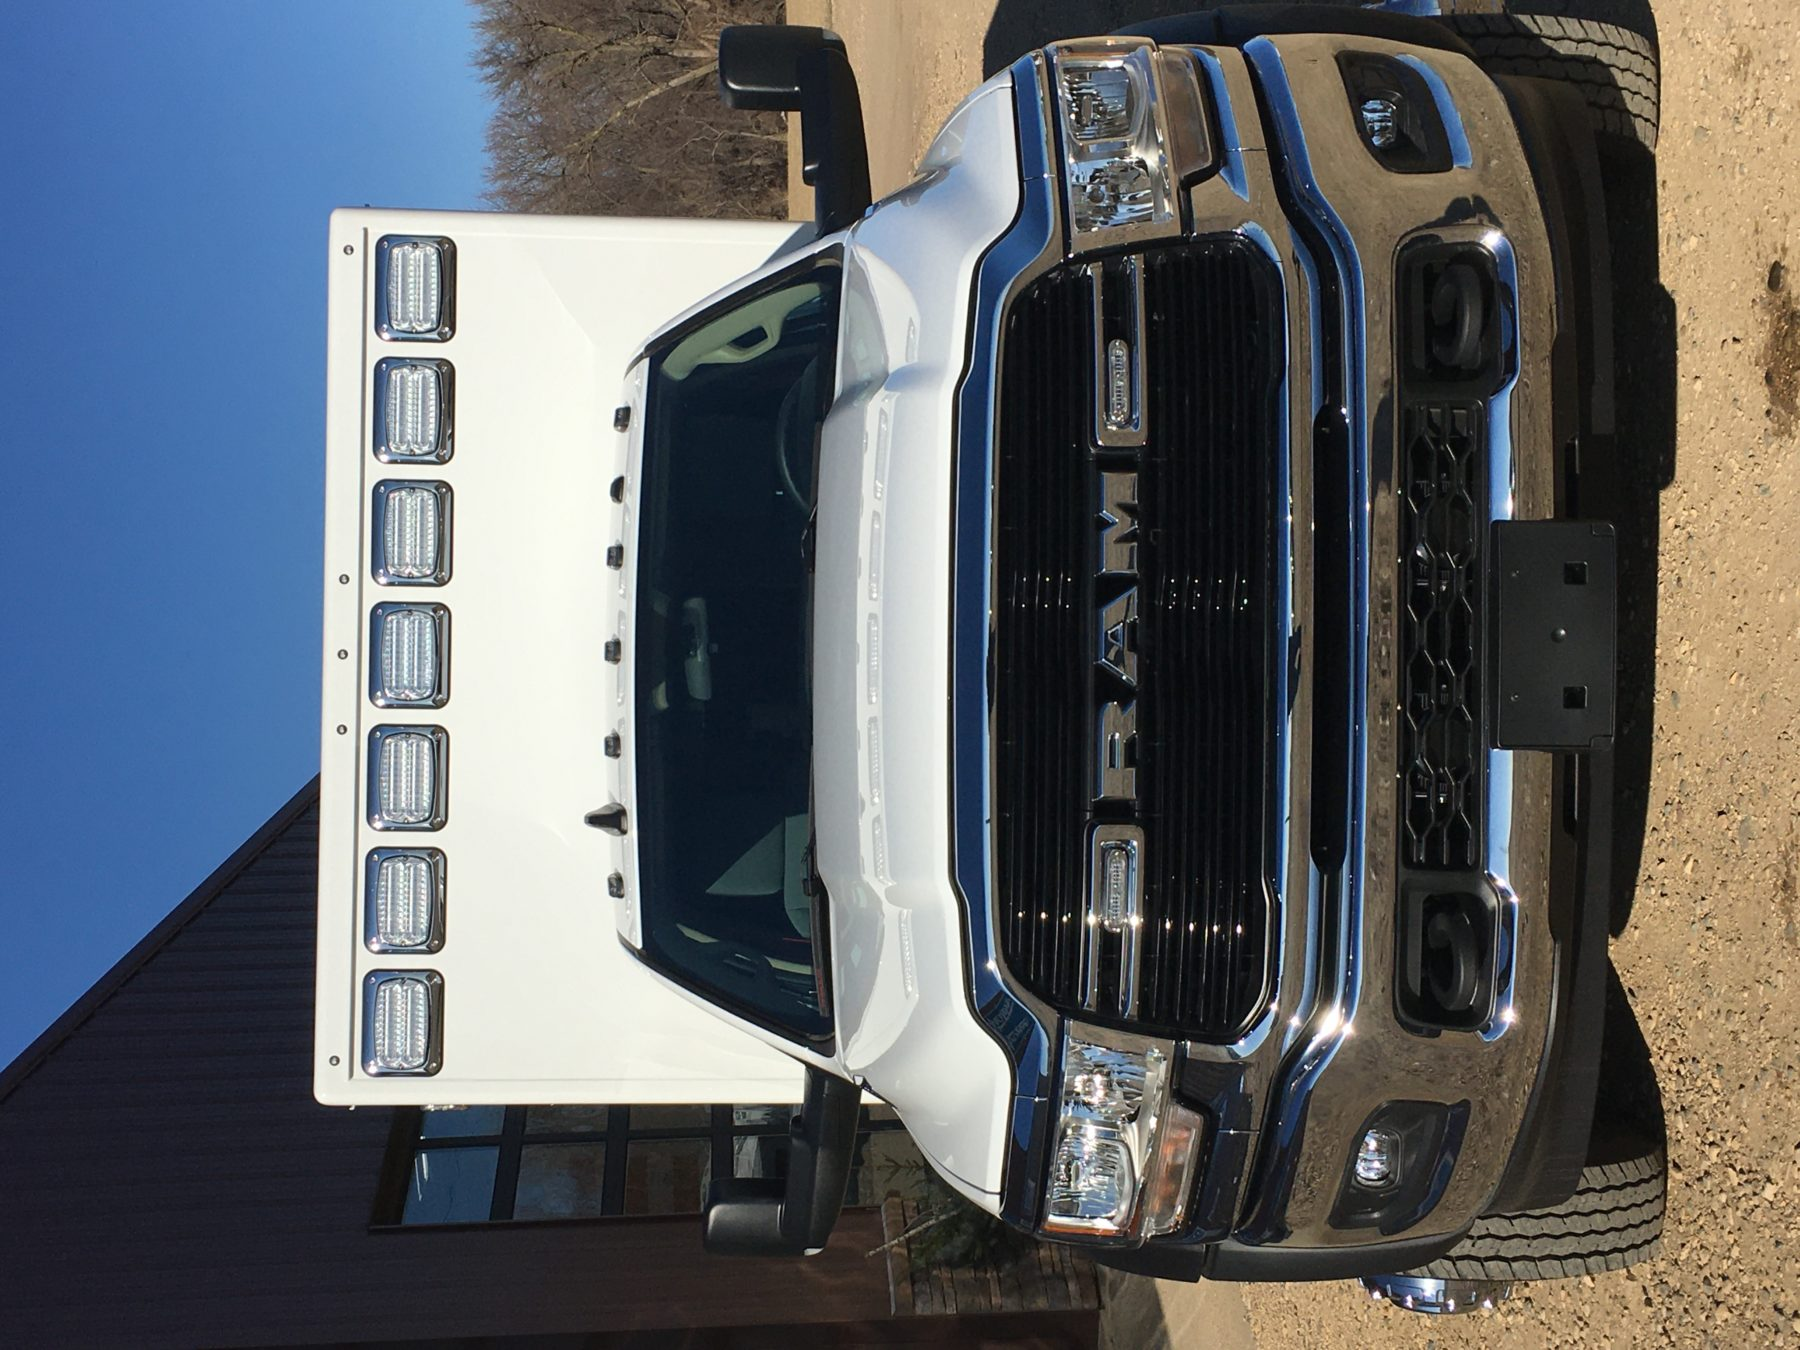 2020 Ram 4500 4x4 Heavy Duty Ambulance For Sale – Picture 7